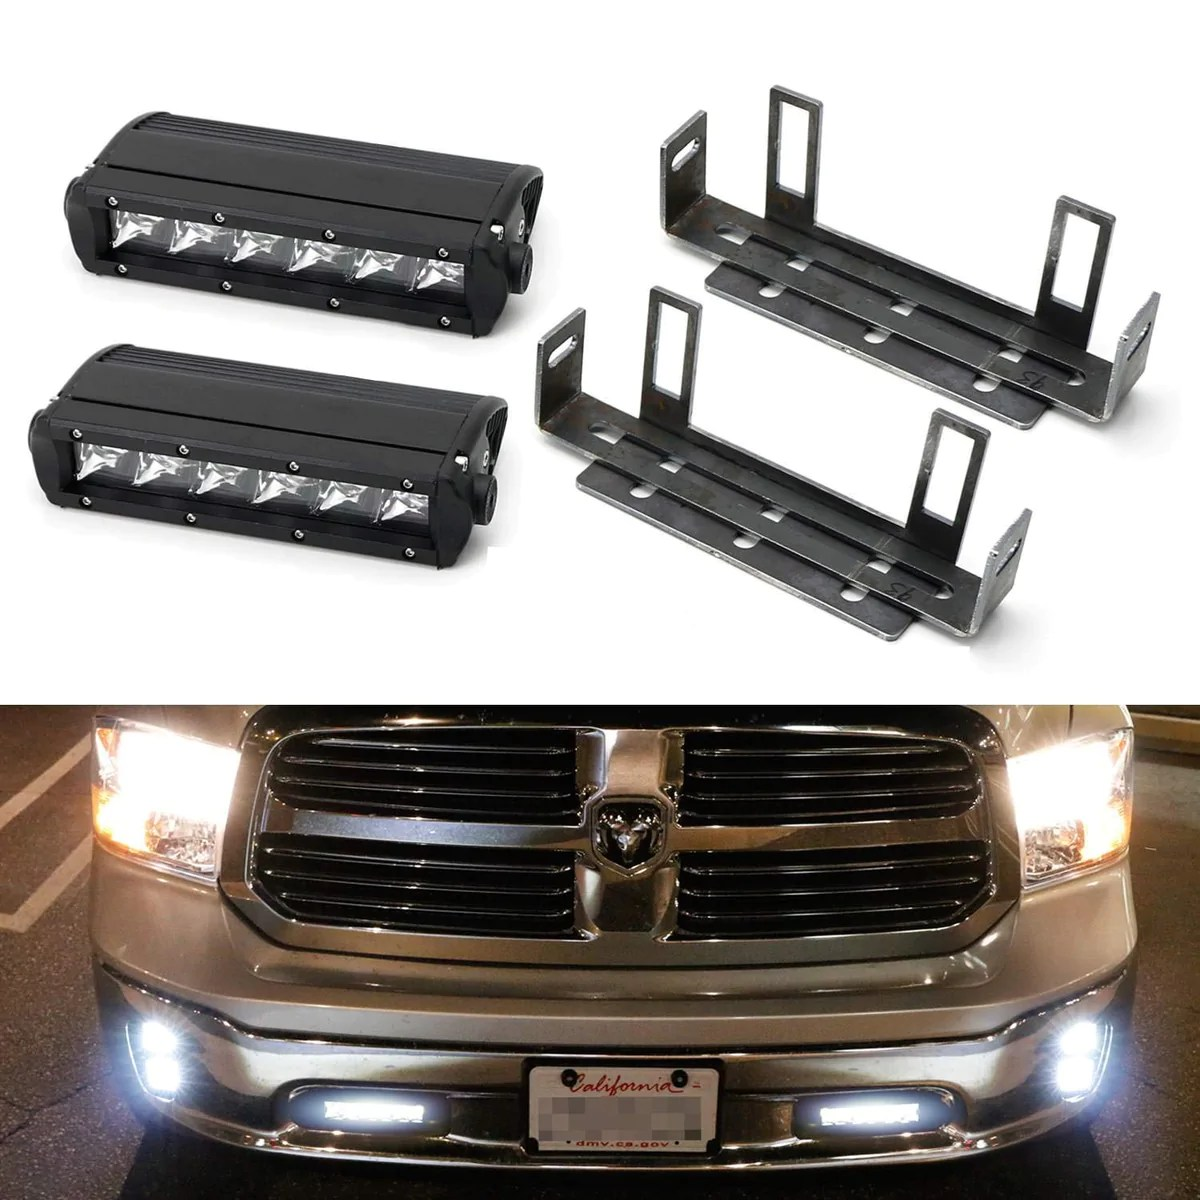 small resolution of lower bumper led light bar kit for 2011 18 dodge ram 1500 includes 2 30w high power cree led lightbars tow hook opening area brackets on off switch